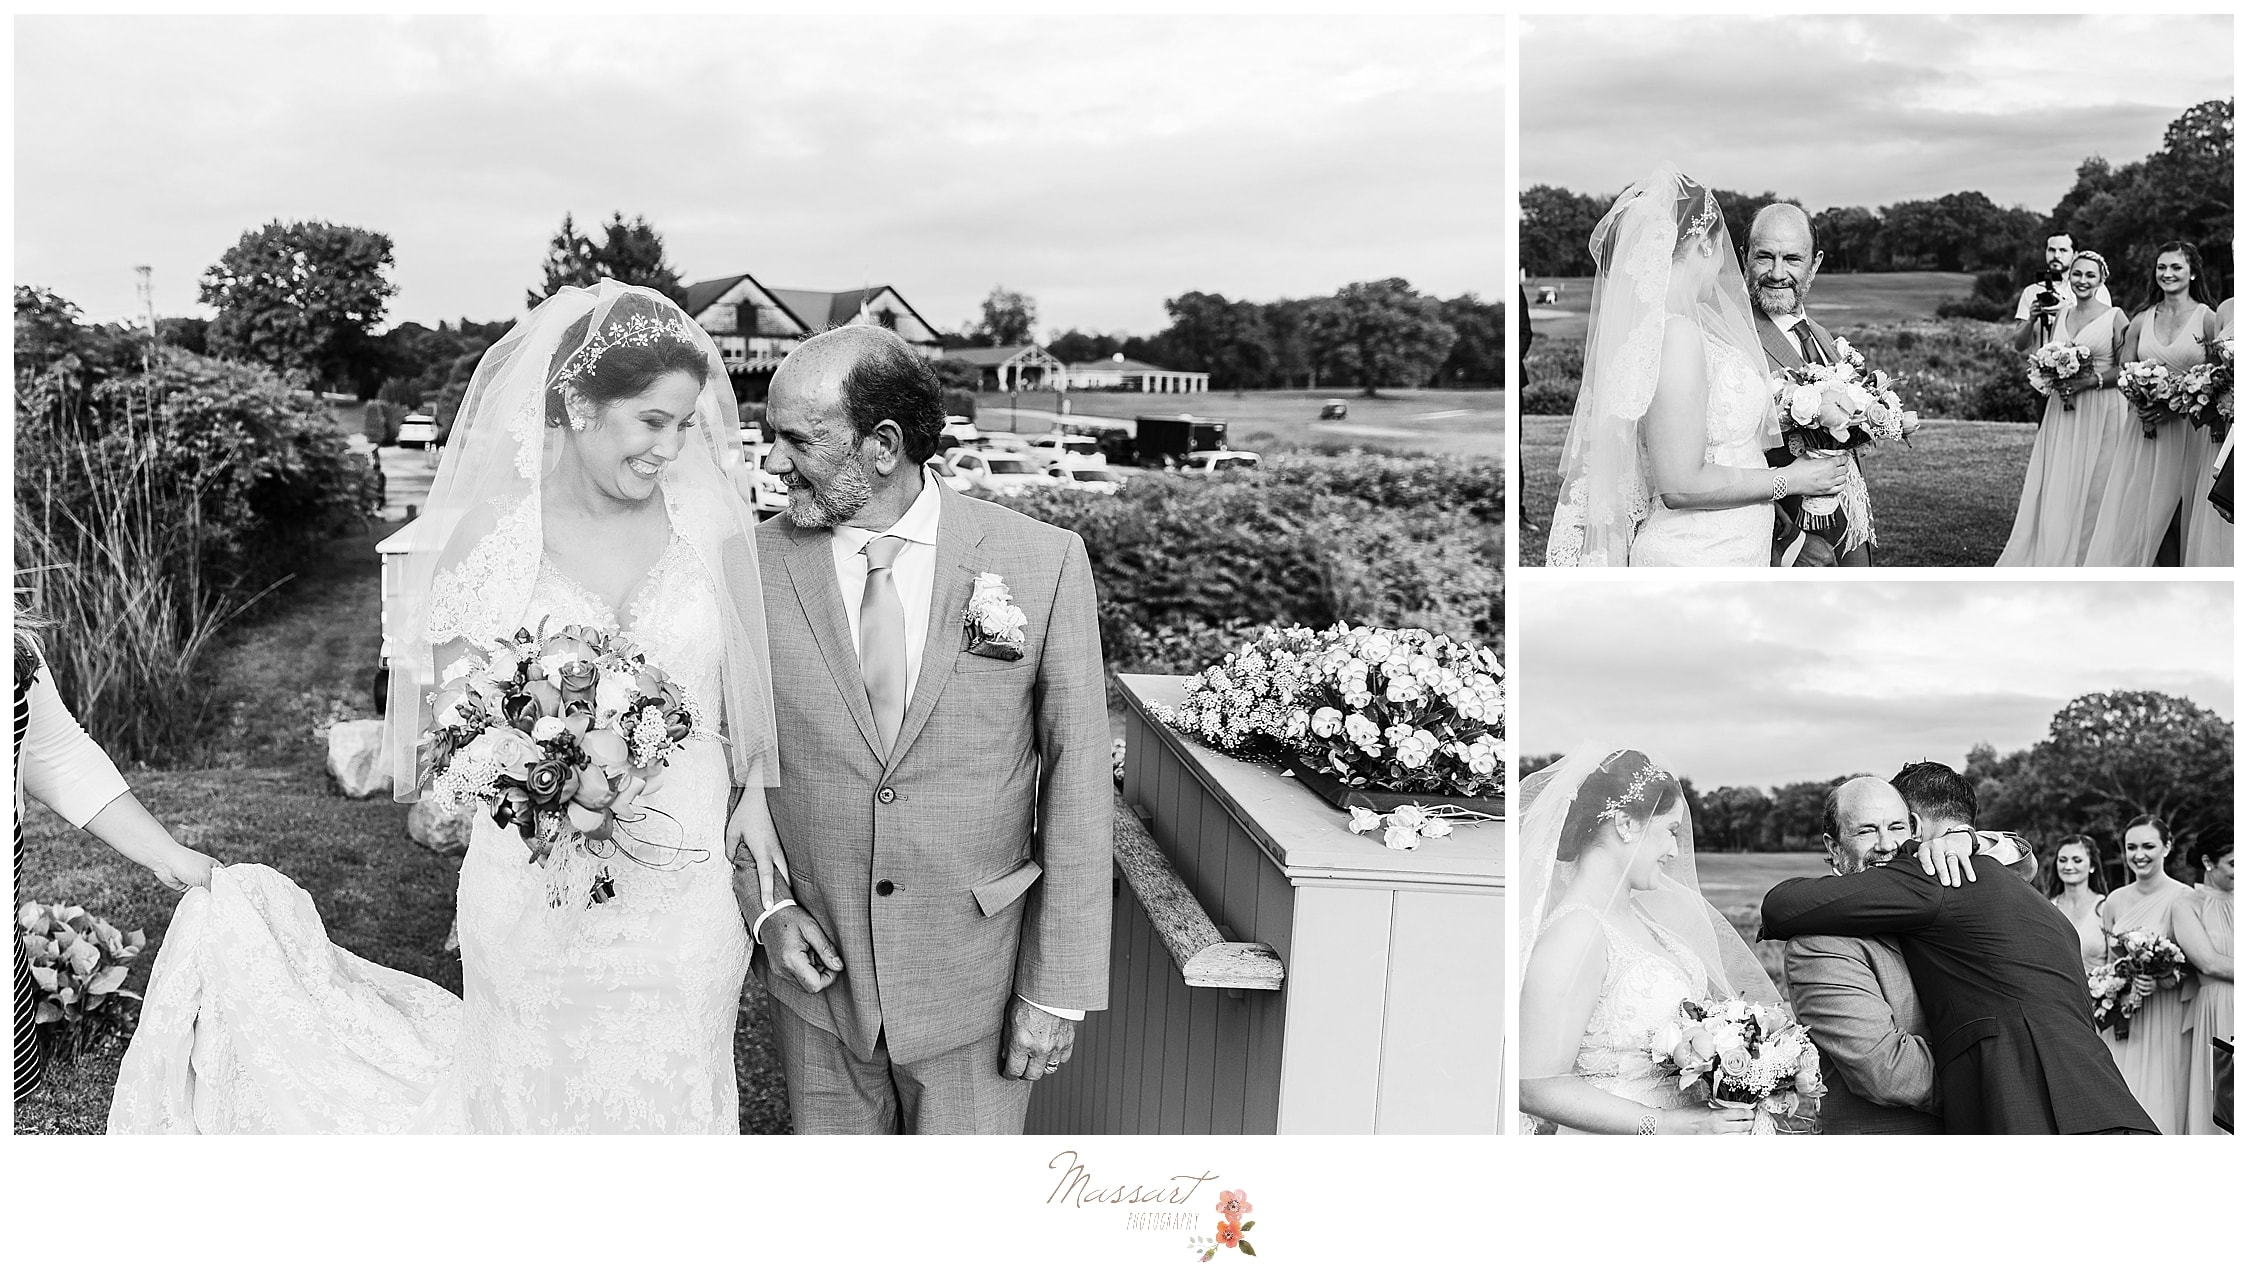 Bride coming down the aisle with father for outdoor summer wedding photographed by RI wedding photographers Massart Photography.